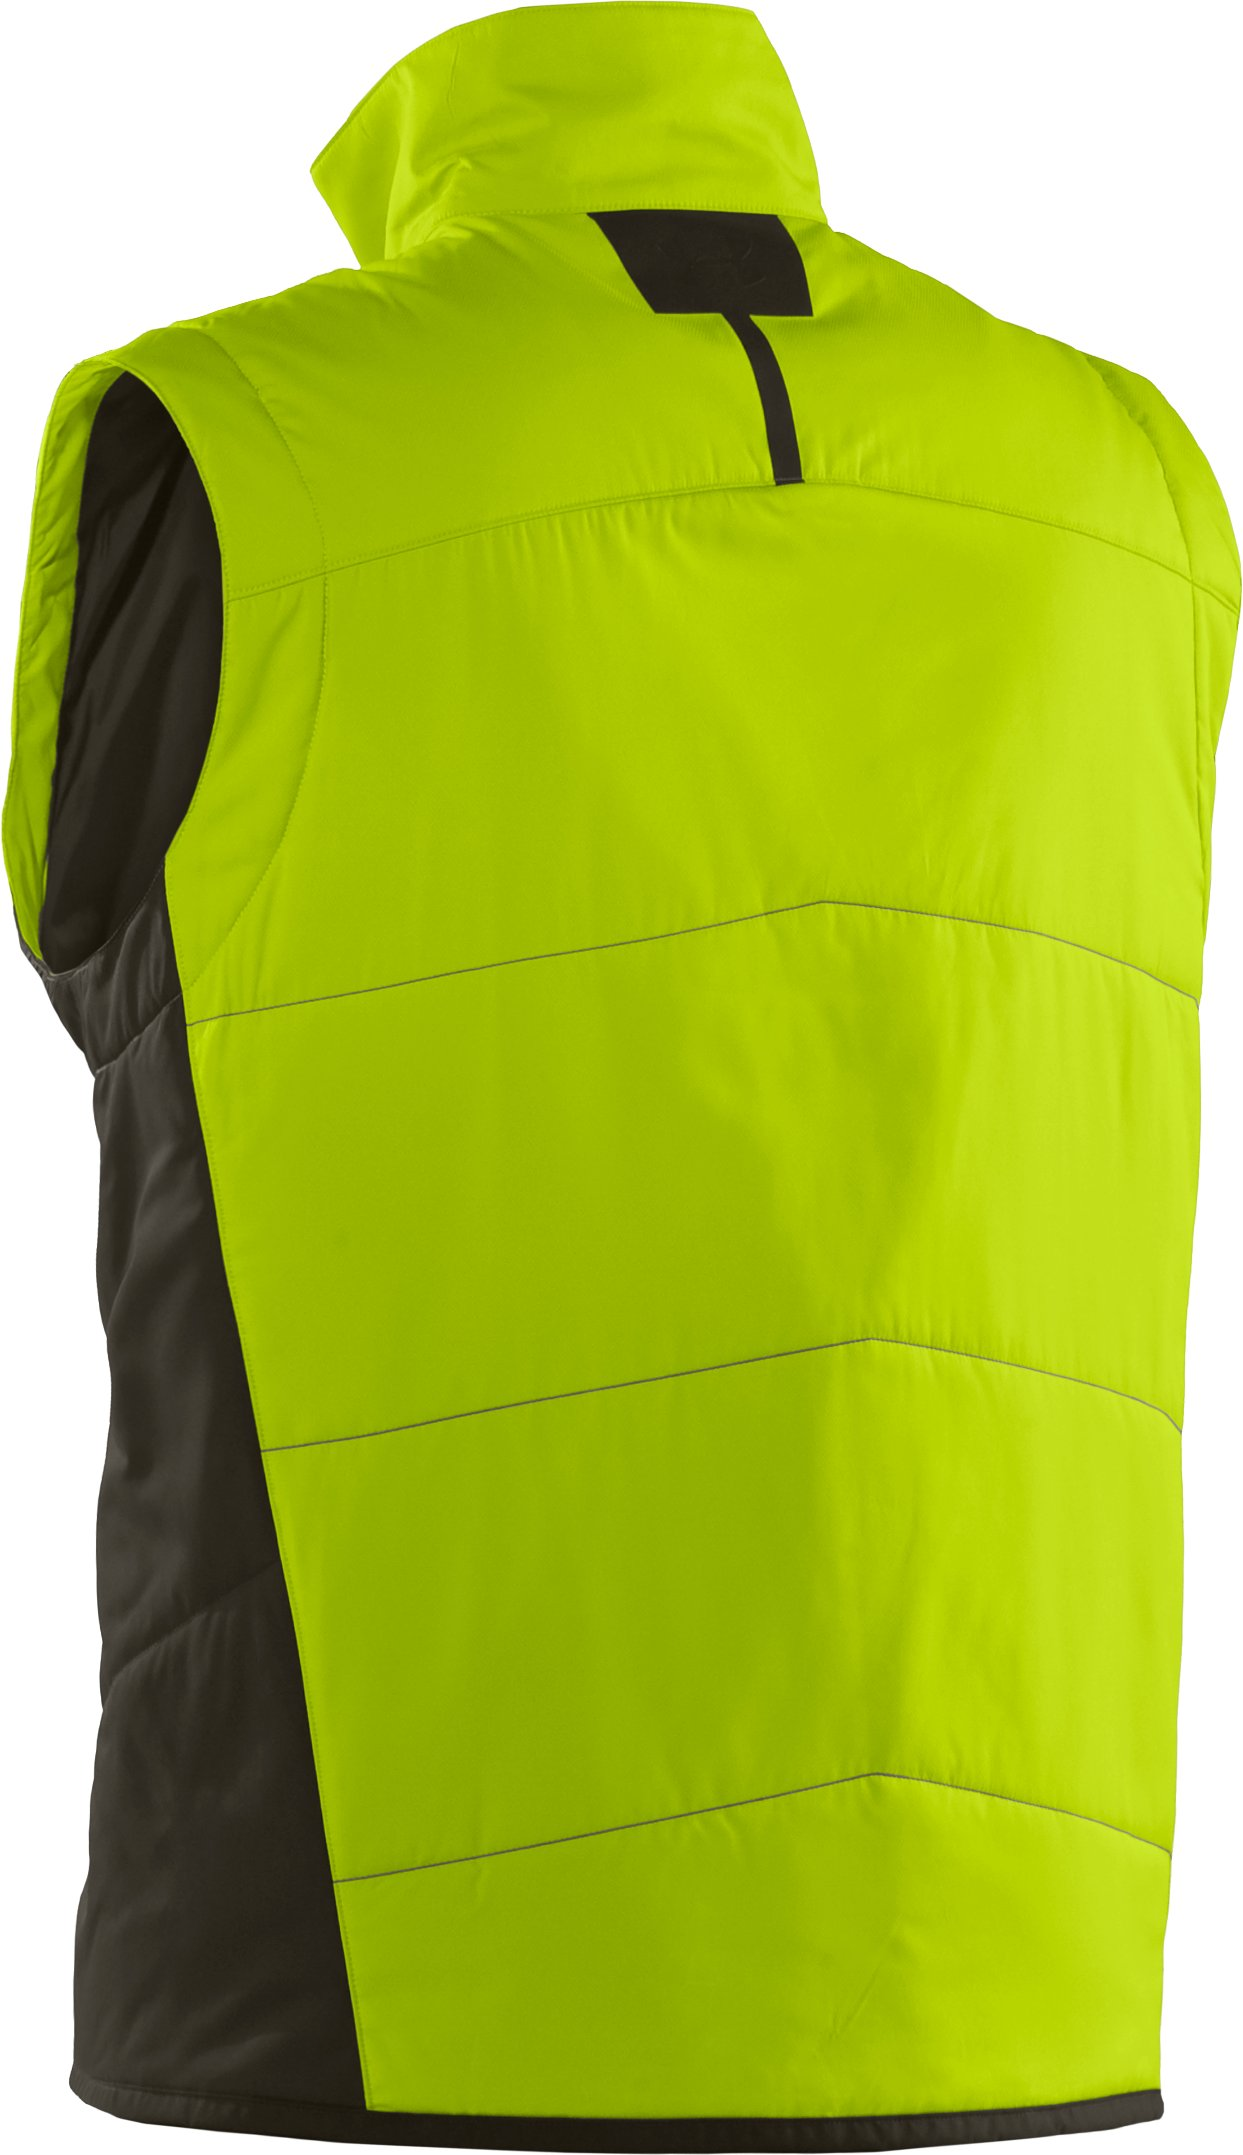 Men's ArmourLoft® Mountain Vest, Velocity,